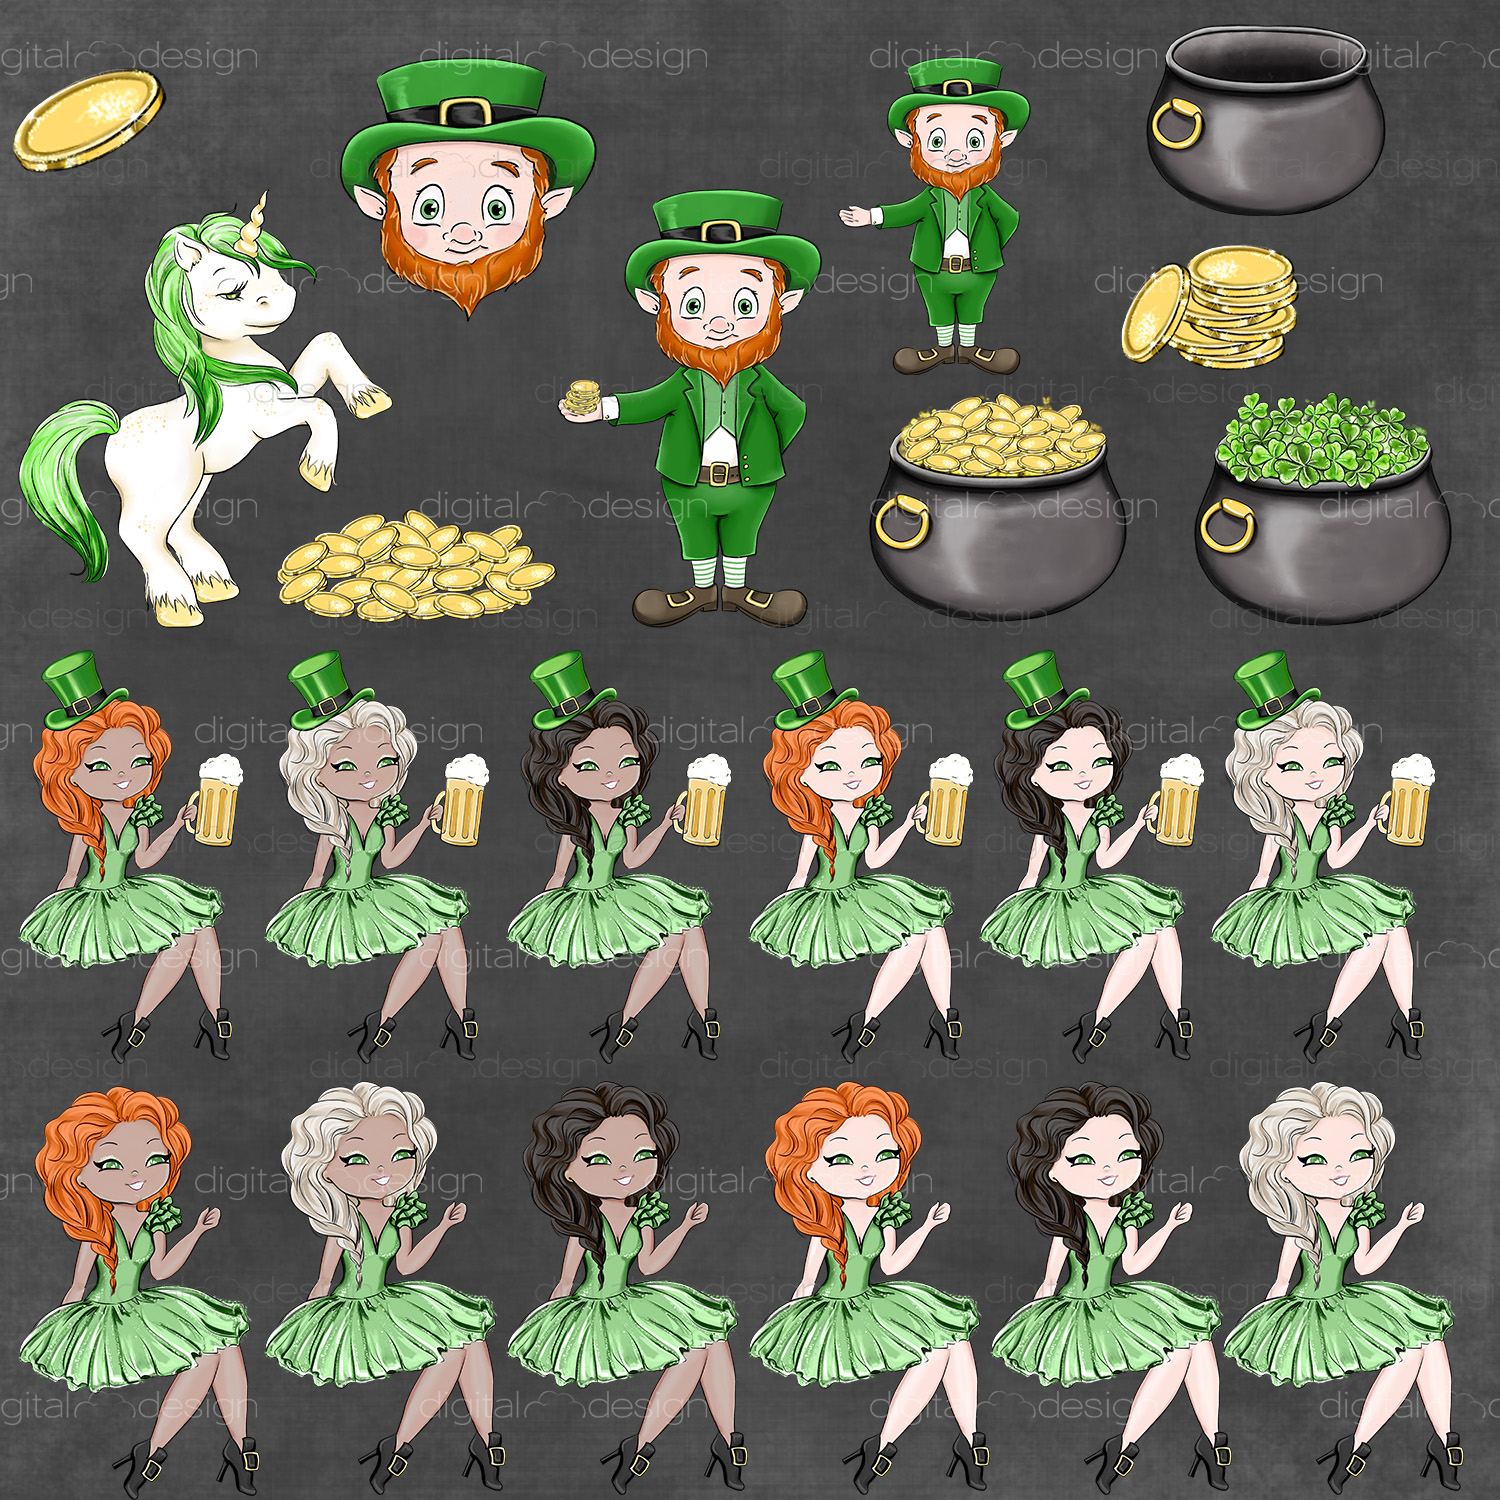 Its Your Lucky Day - Clipart example image 3